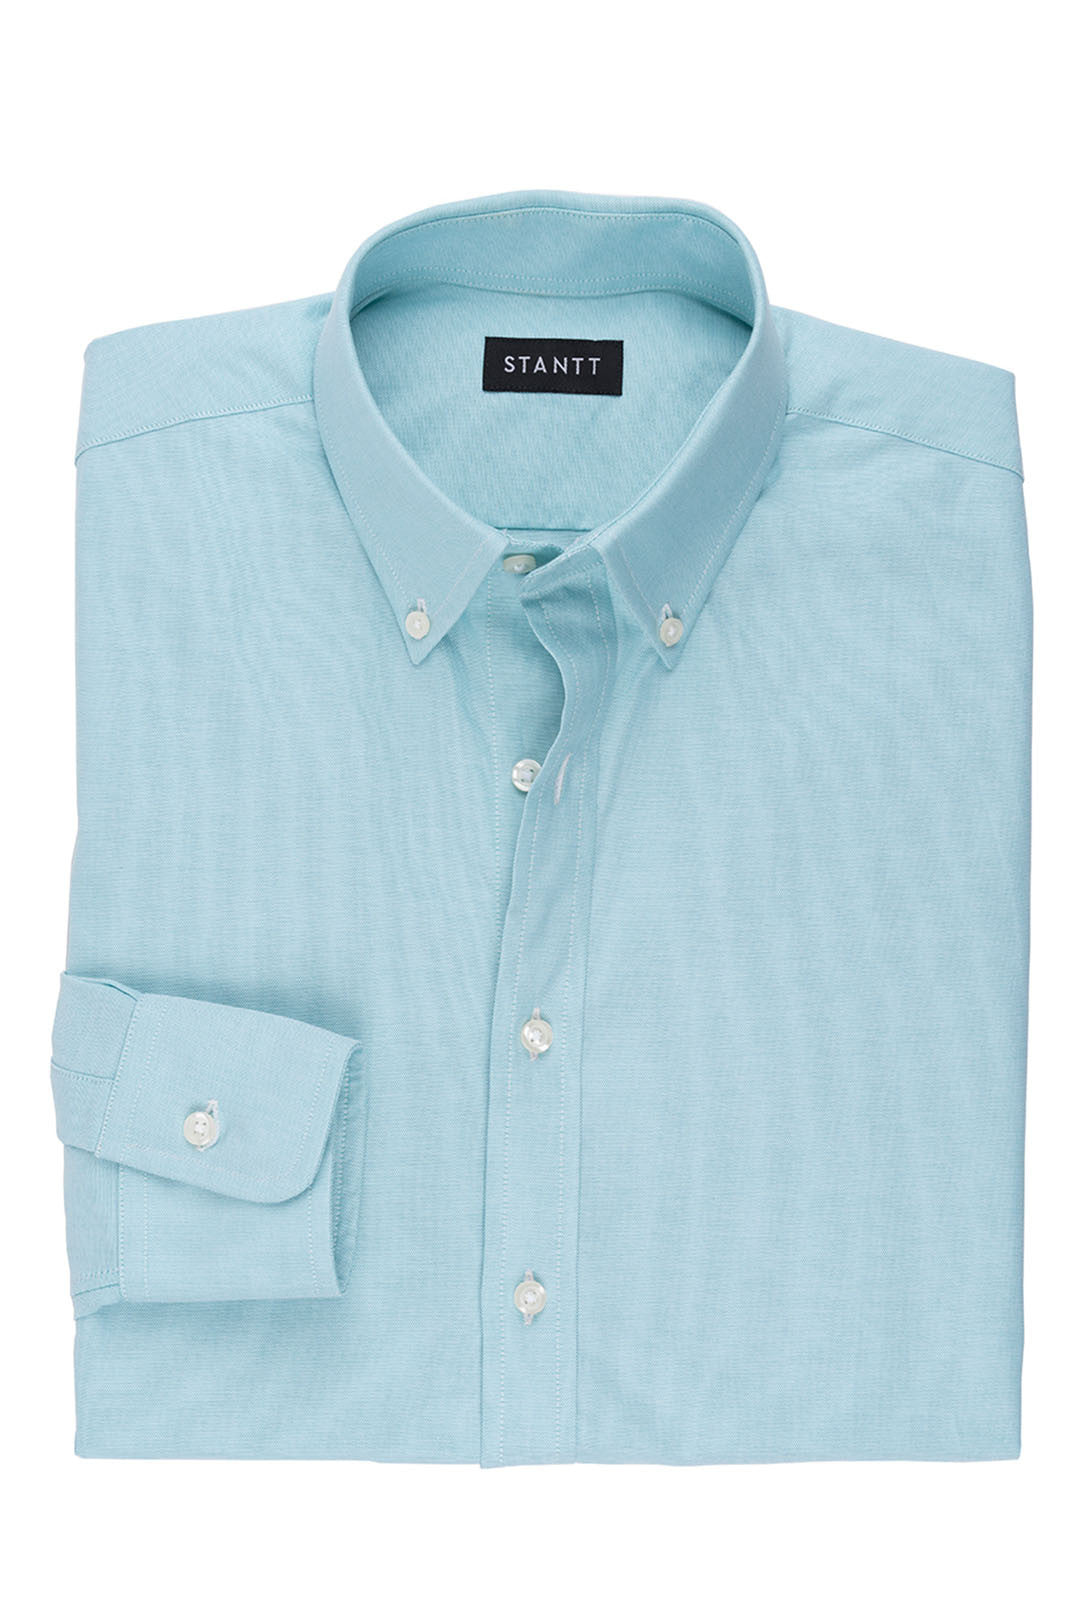 Turquoise Oxford: Button-Down Collar, Barrel Cuff